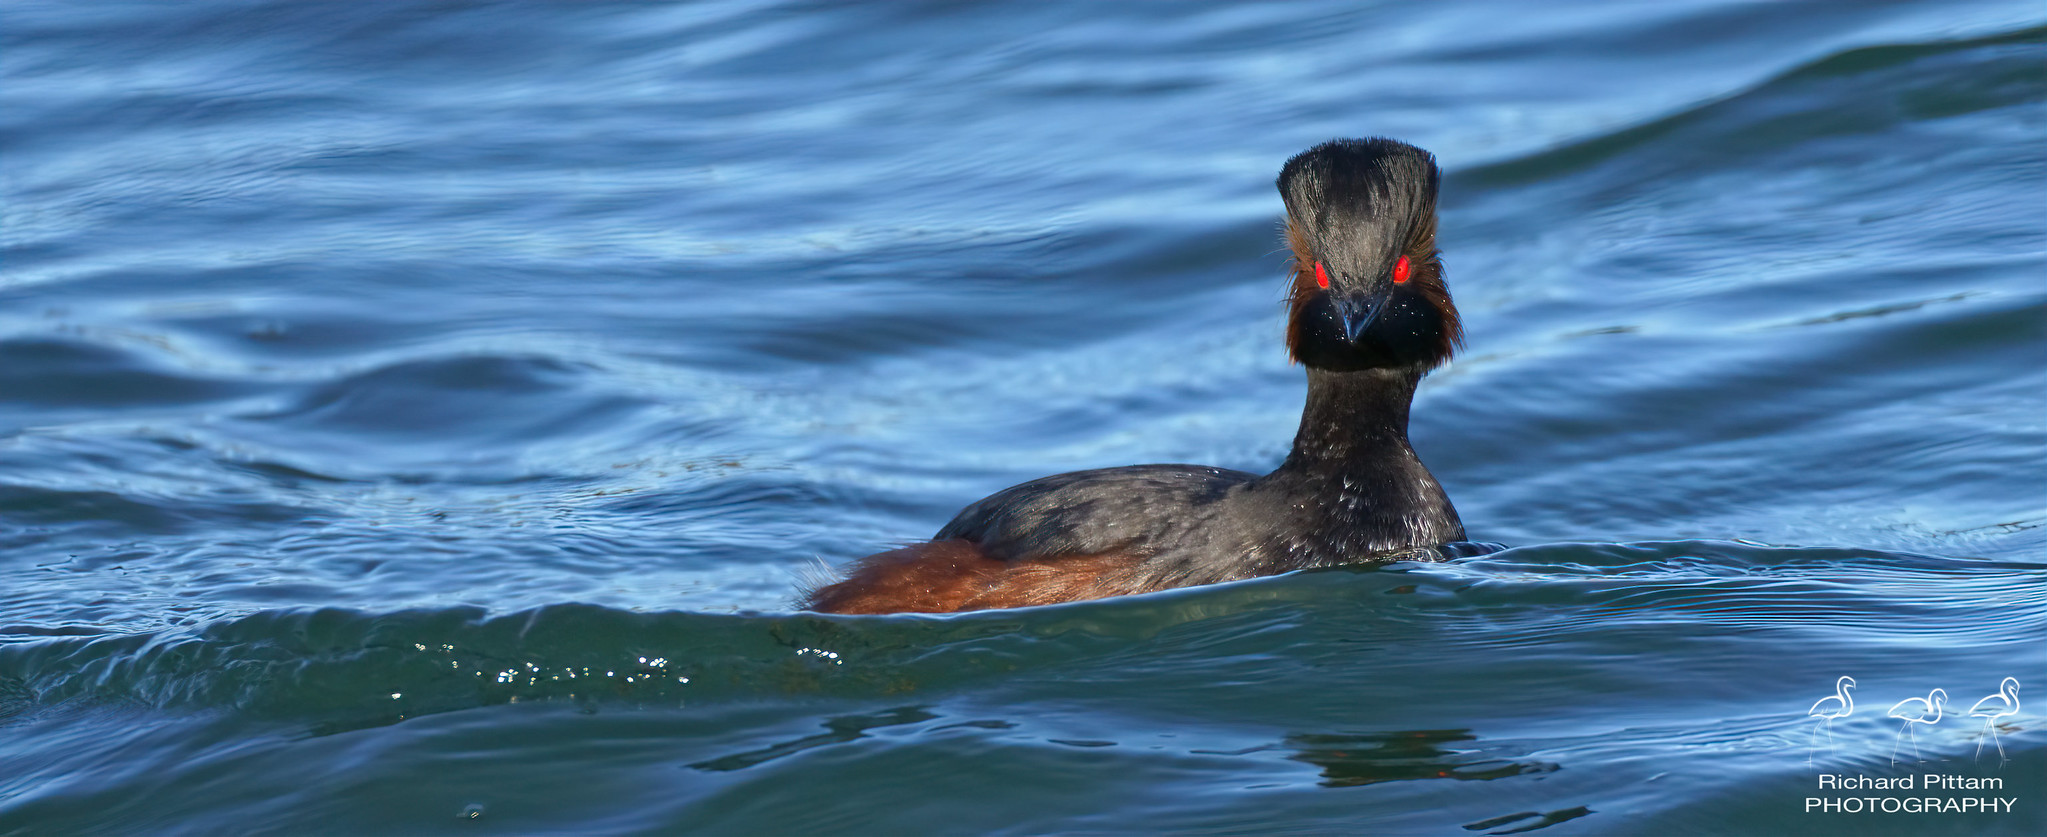 Black-necked Grebe - very cold and windy day